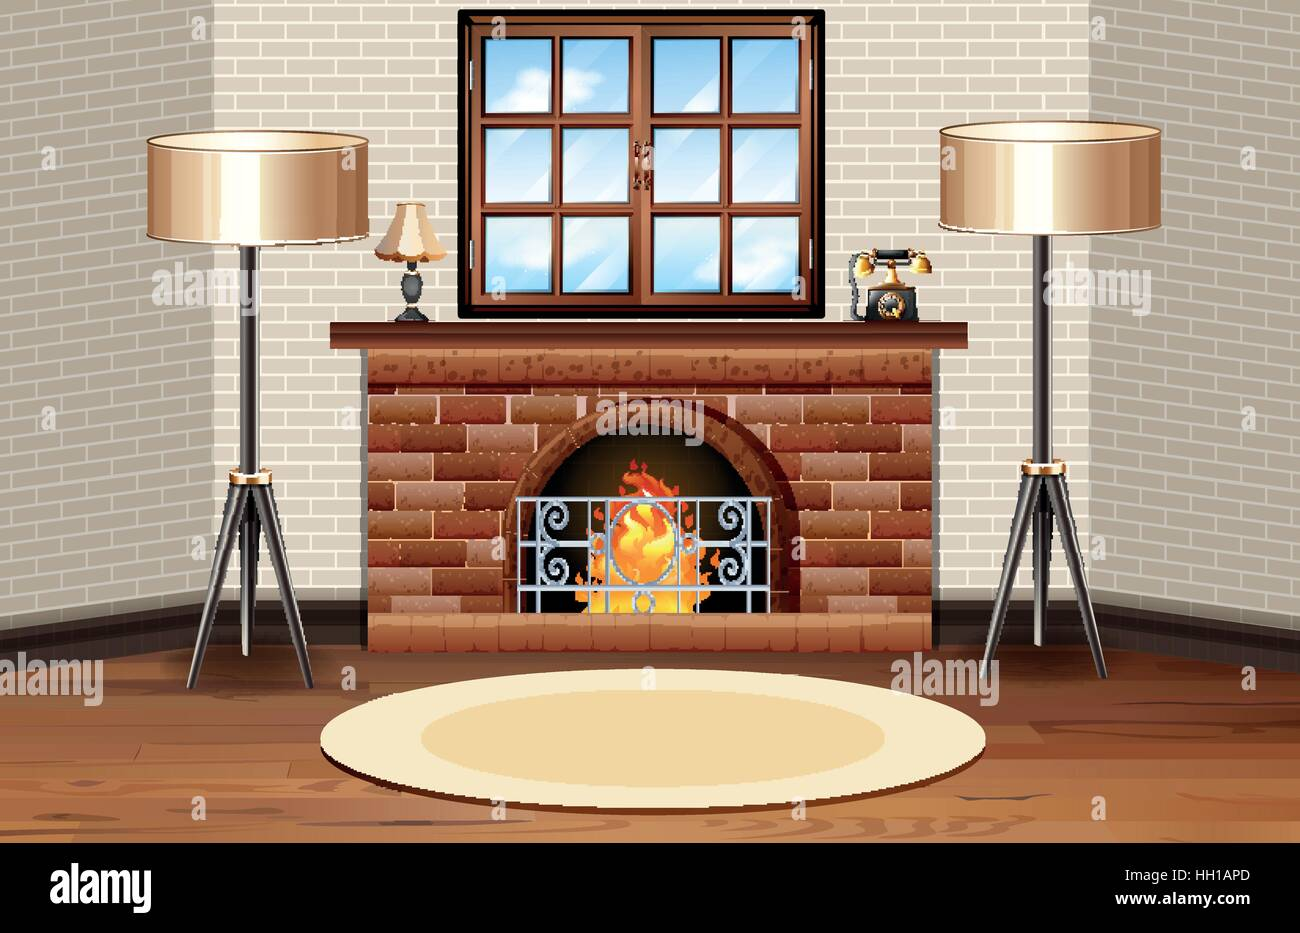 Room scene with fireplace and lamps illustration - Stock Vector